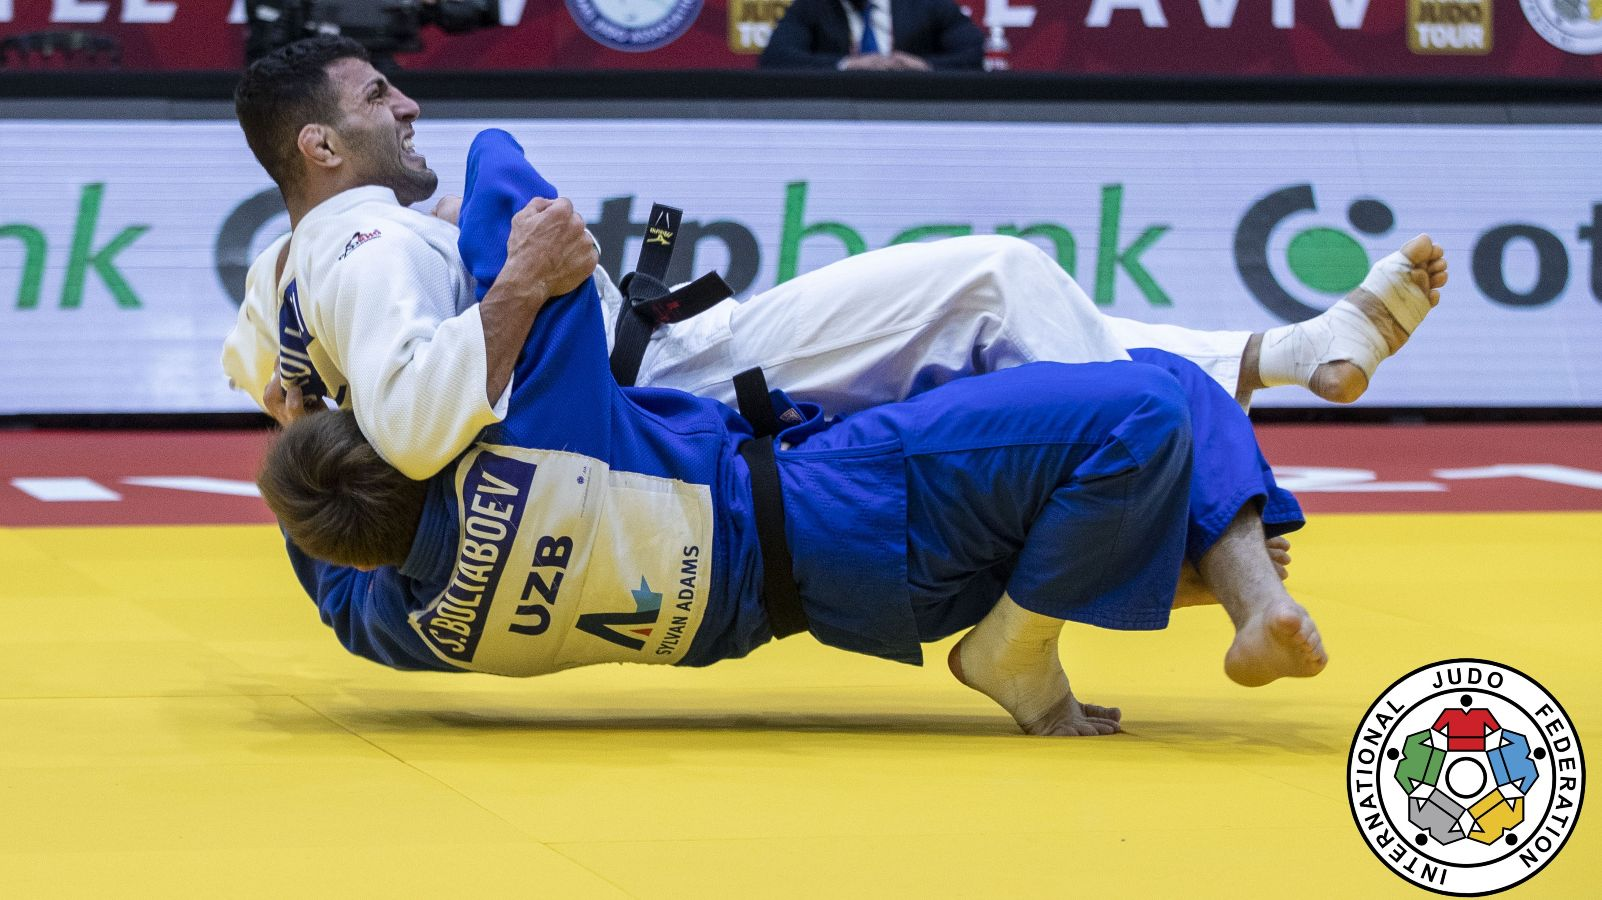 Martial Moves: First Iranian To Win Judo Competition In Israel